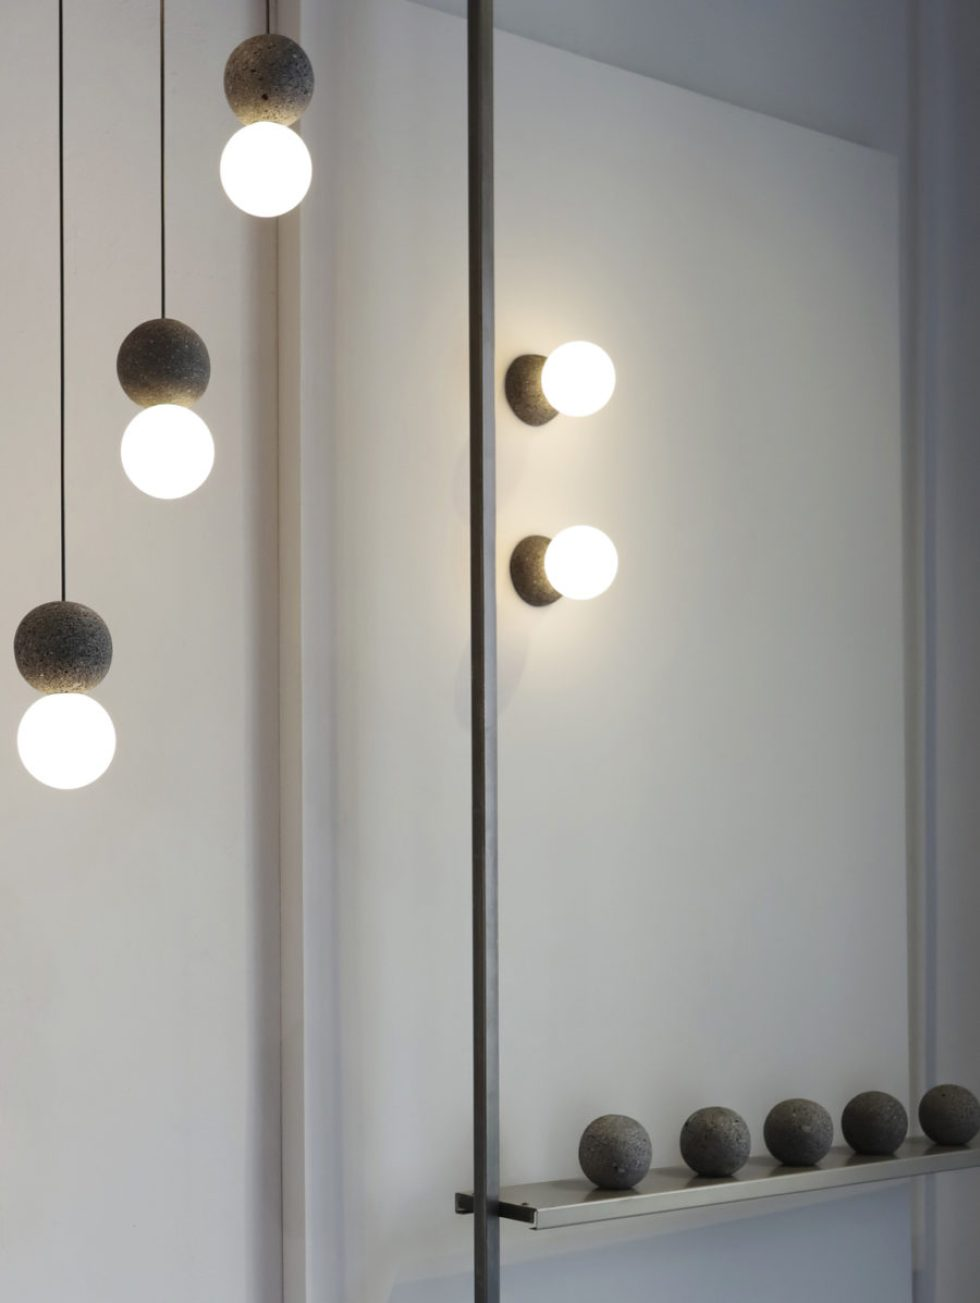 Origo lamps. Showroom David Pompa